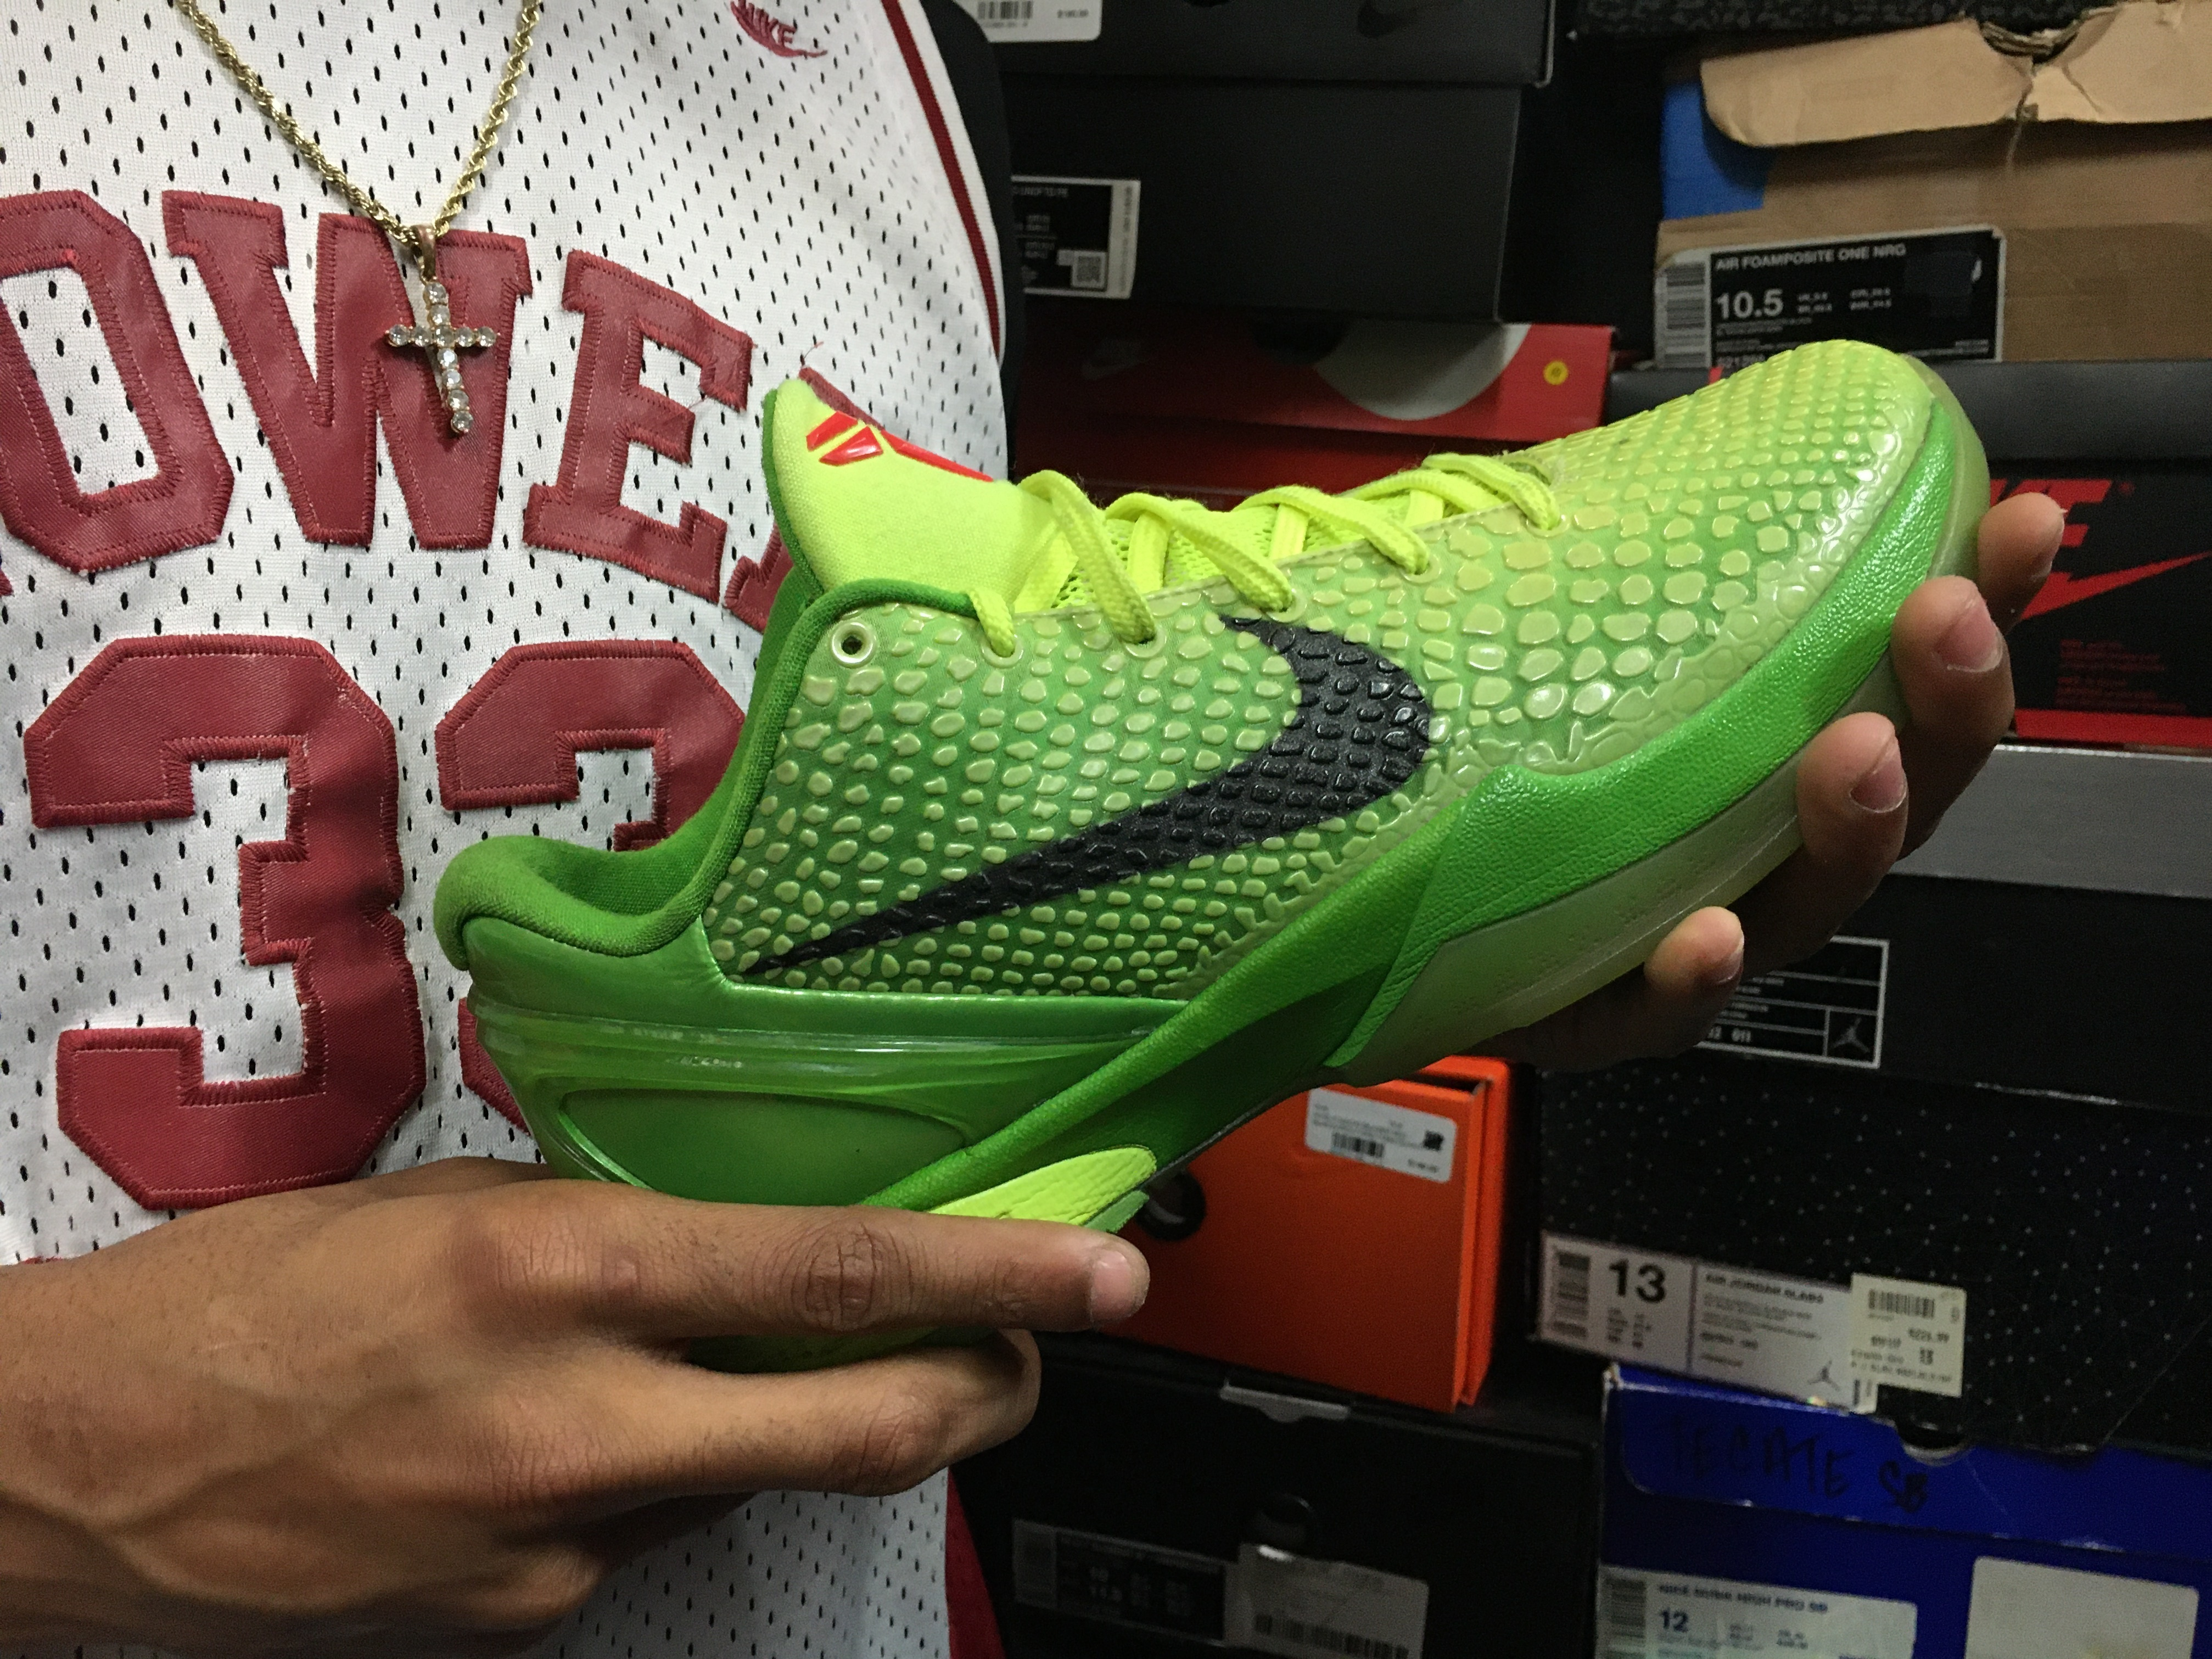 Kobe Bryant Sneakers Are Selling At